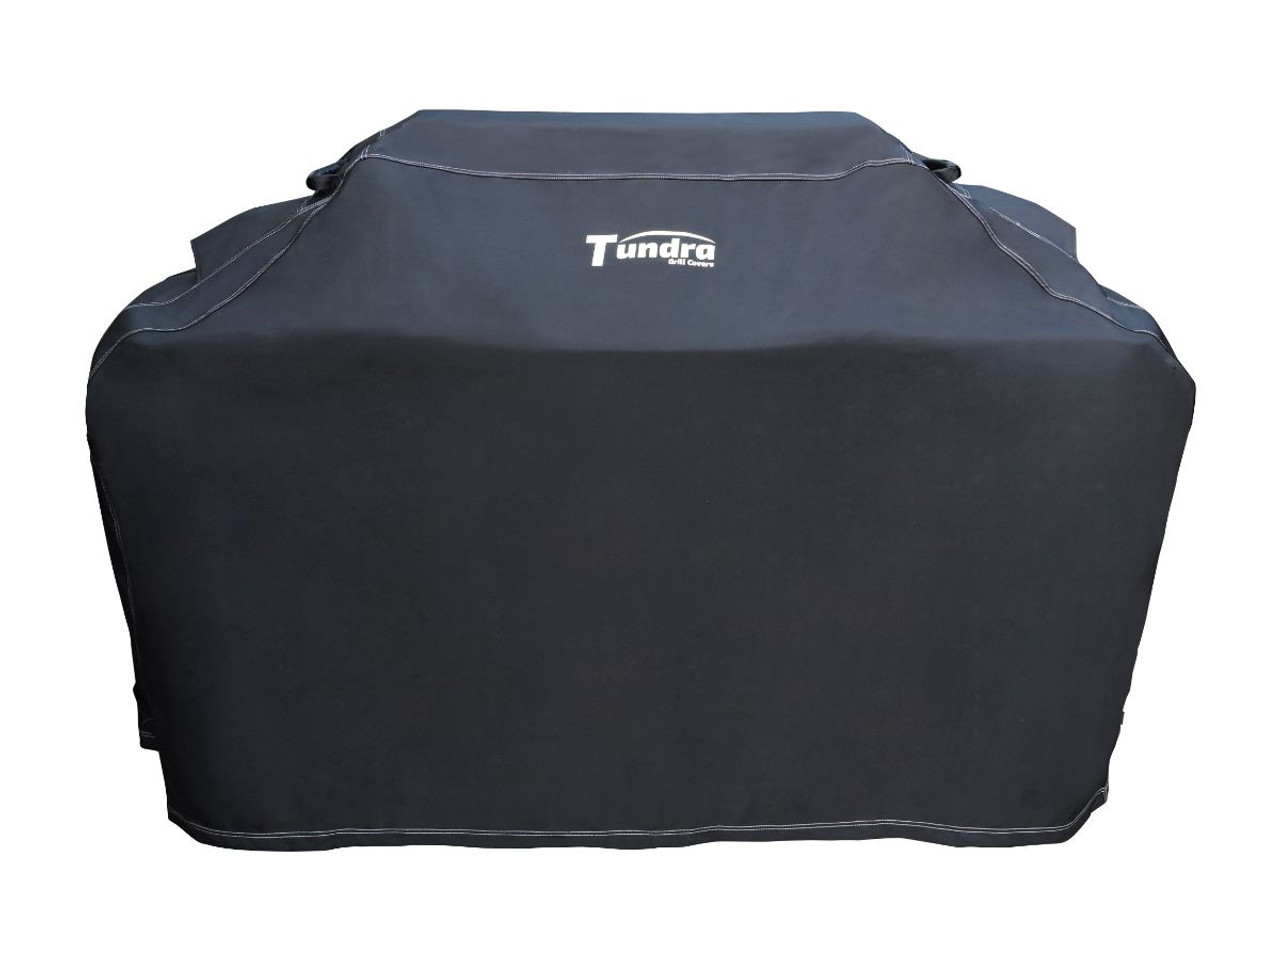 Tundra Supreme Grill Cover; All season, cold rated toughness